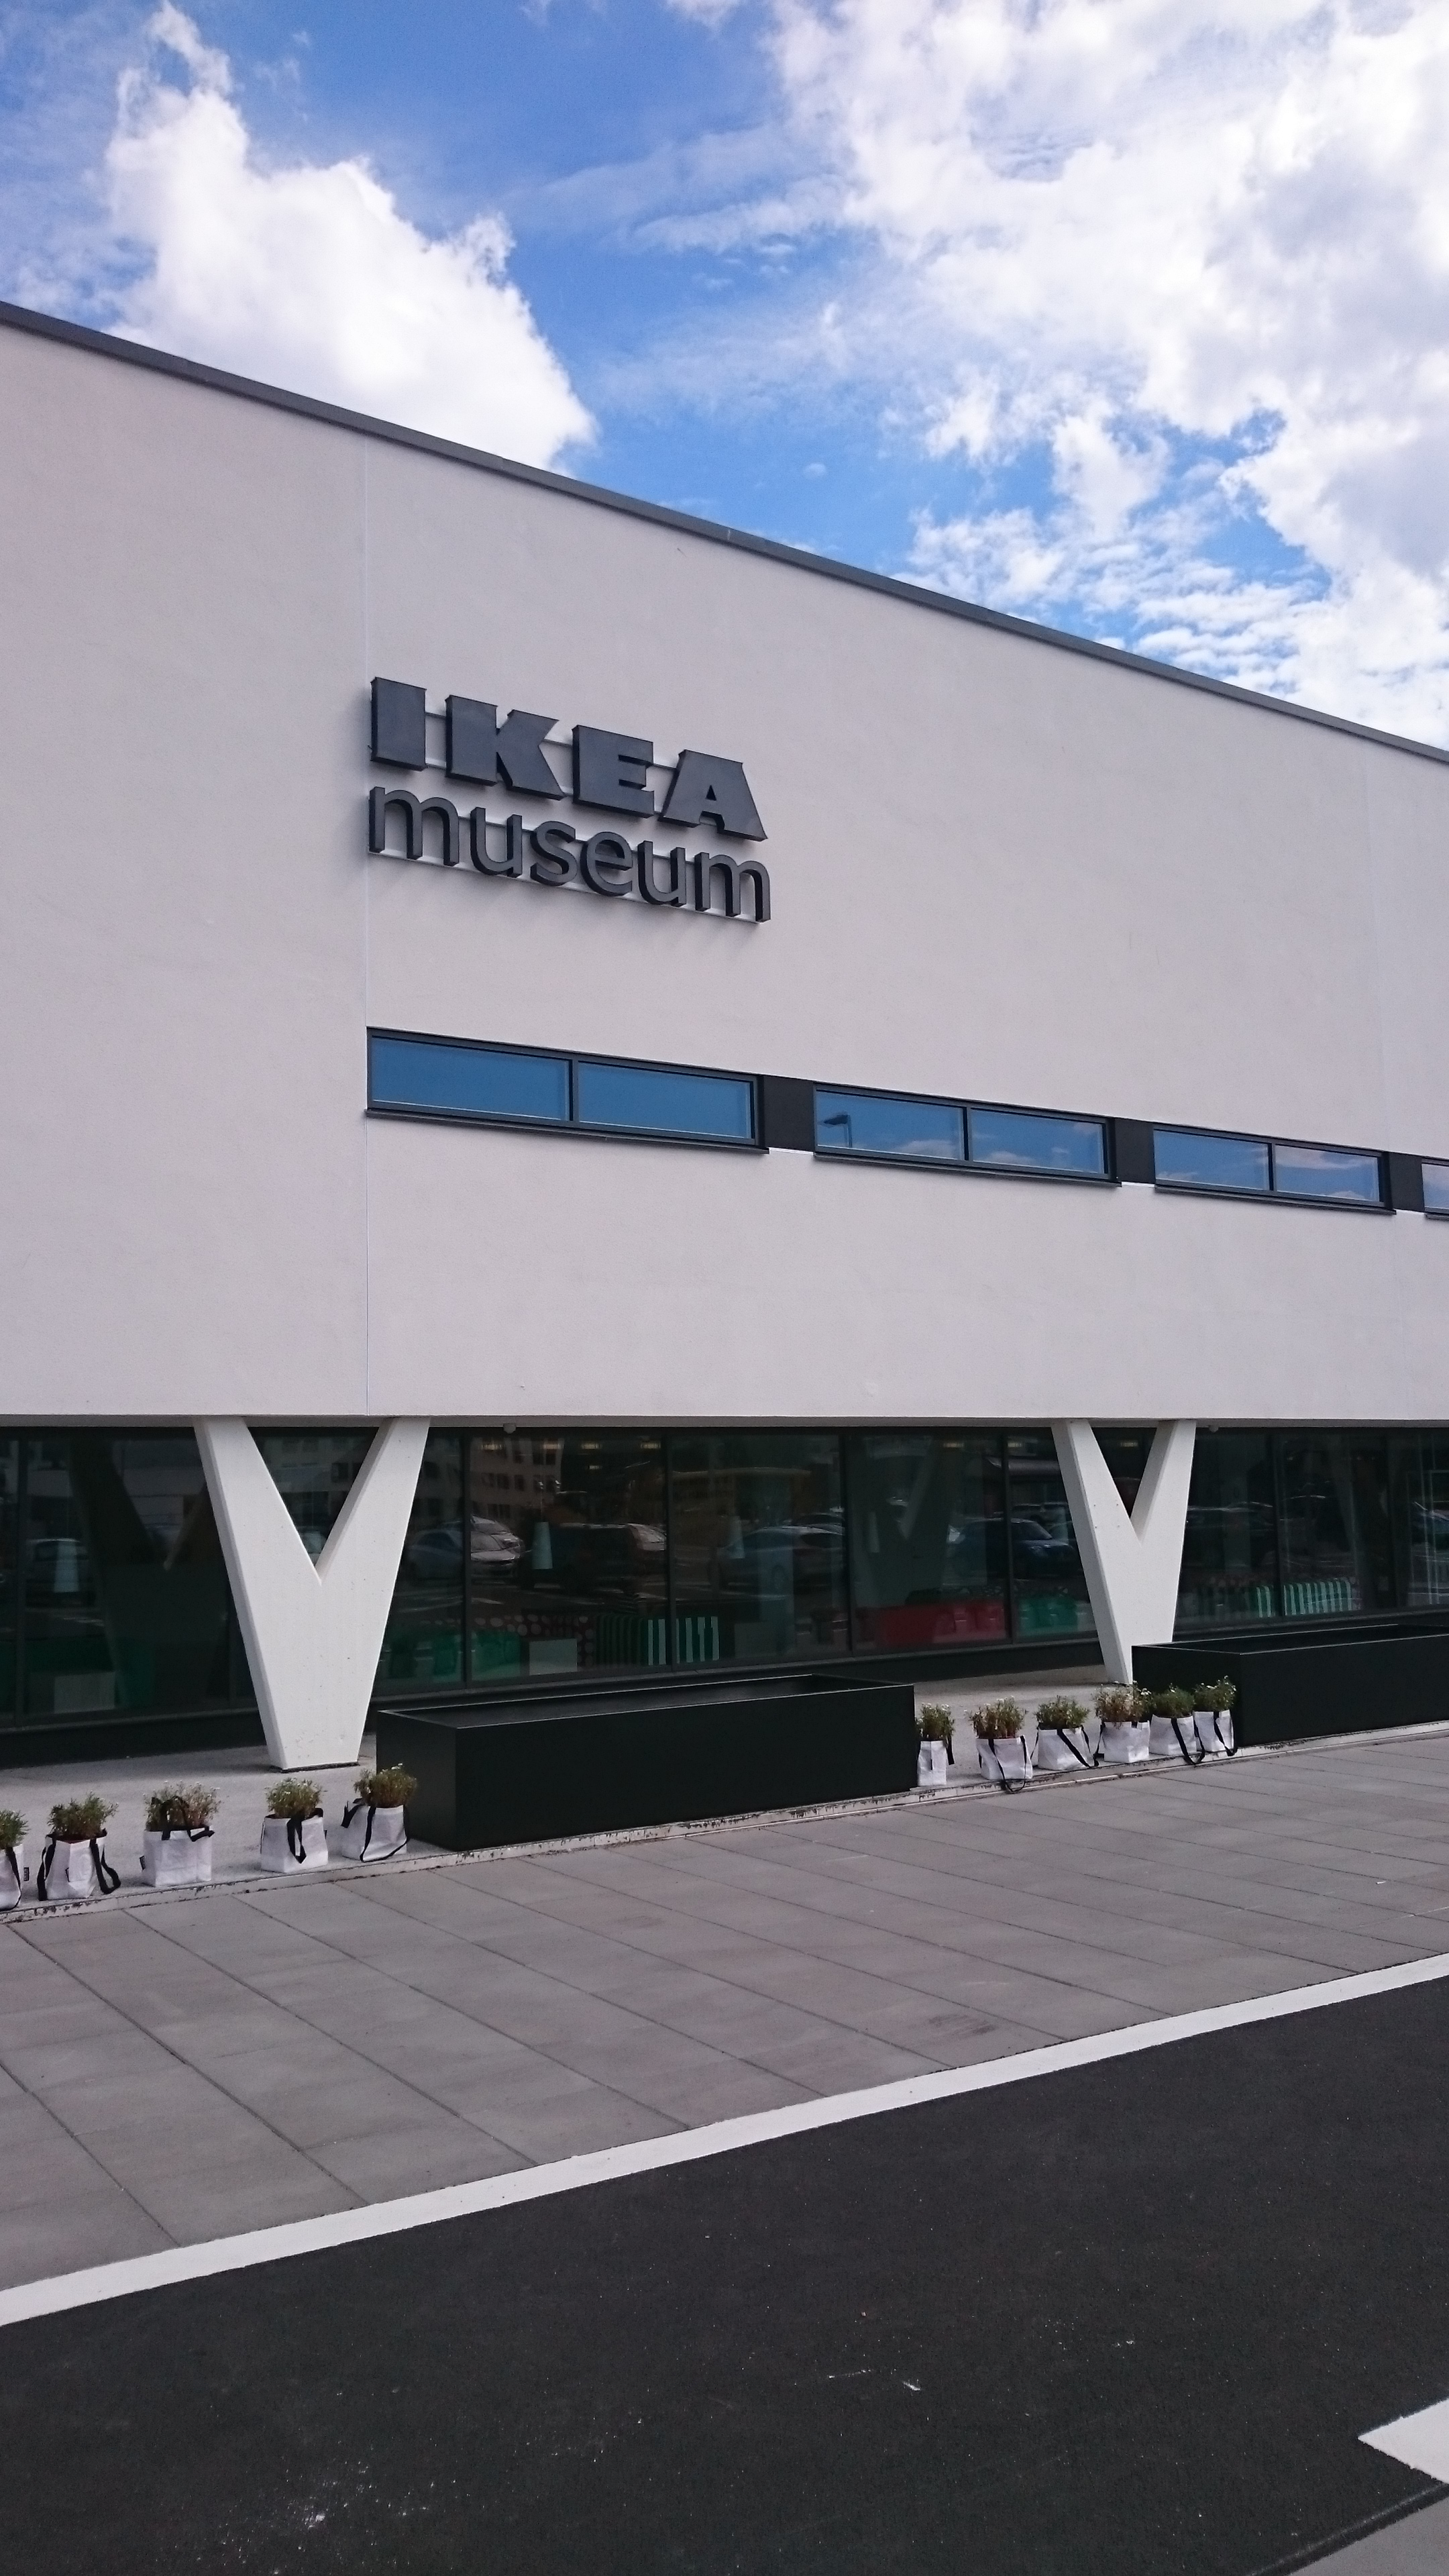 Ikea Museum Almhult | My home is my horst - photo#14